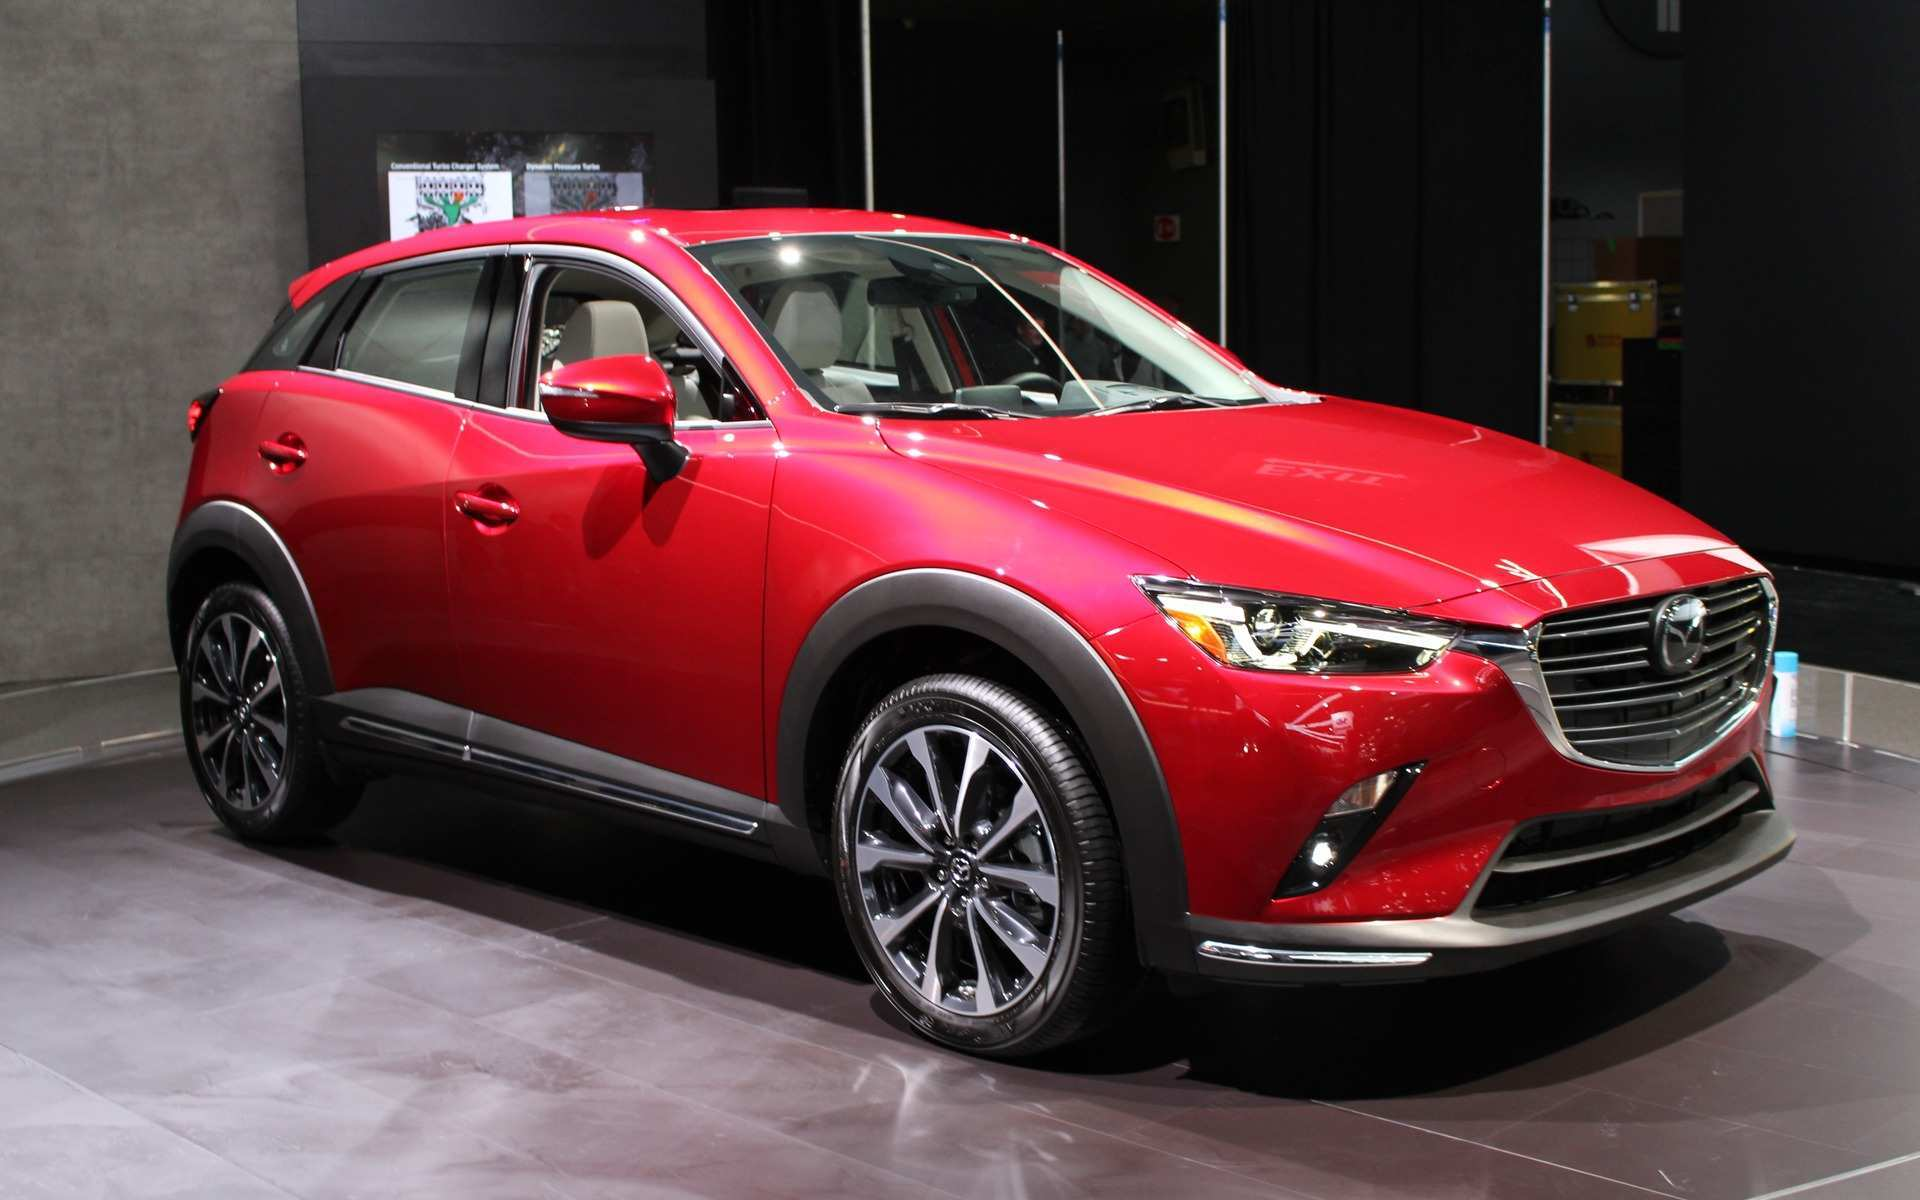 55 All New 2019 Mazda Cx 3 New Review